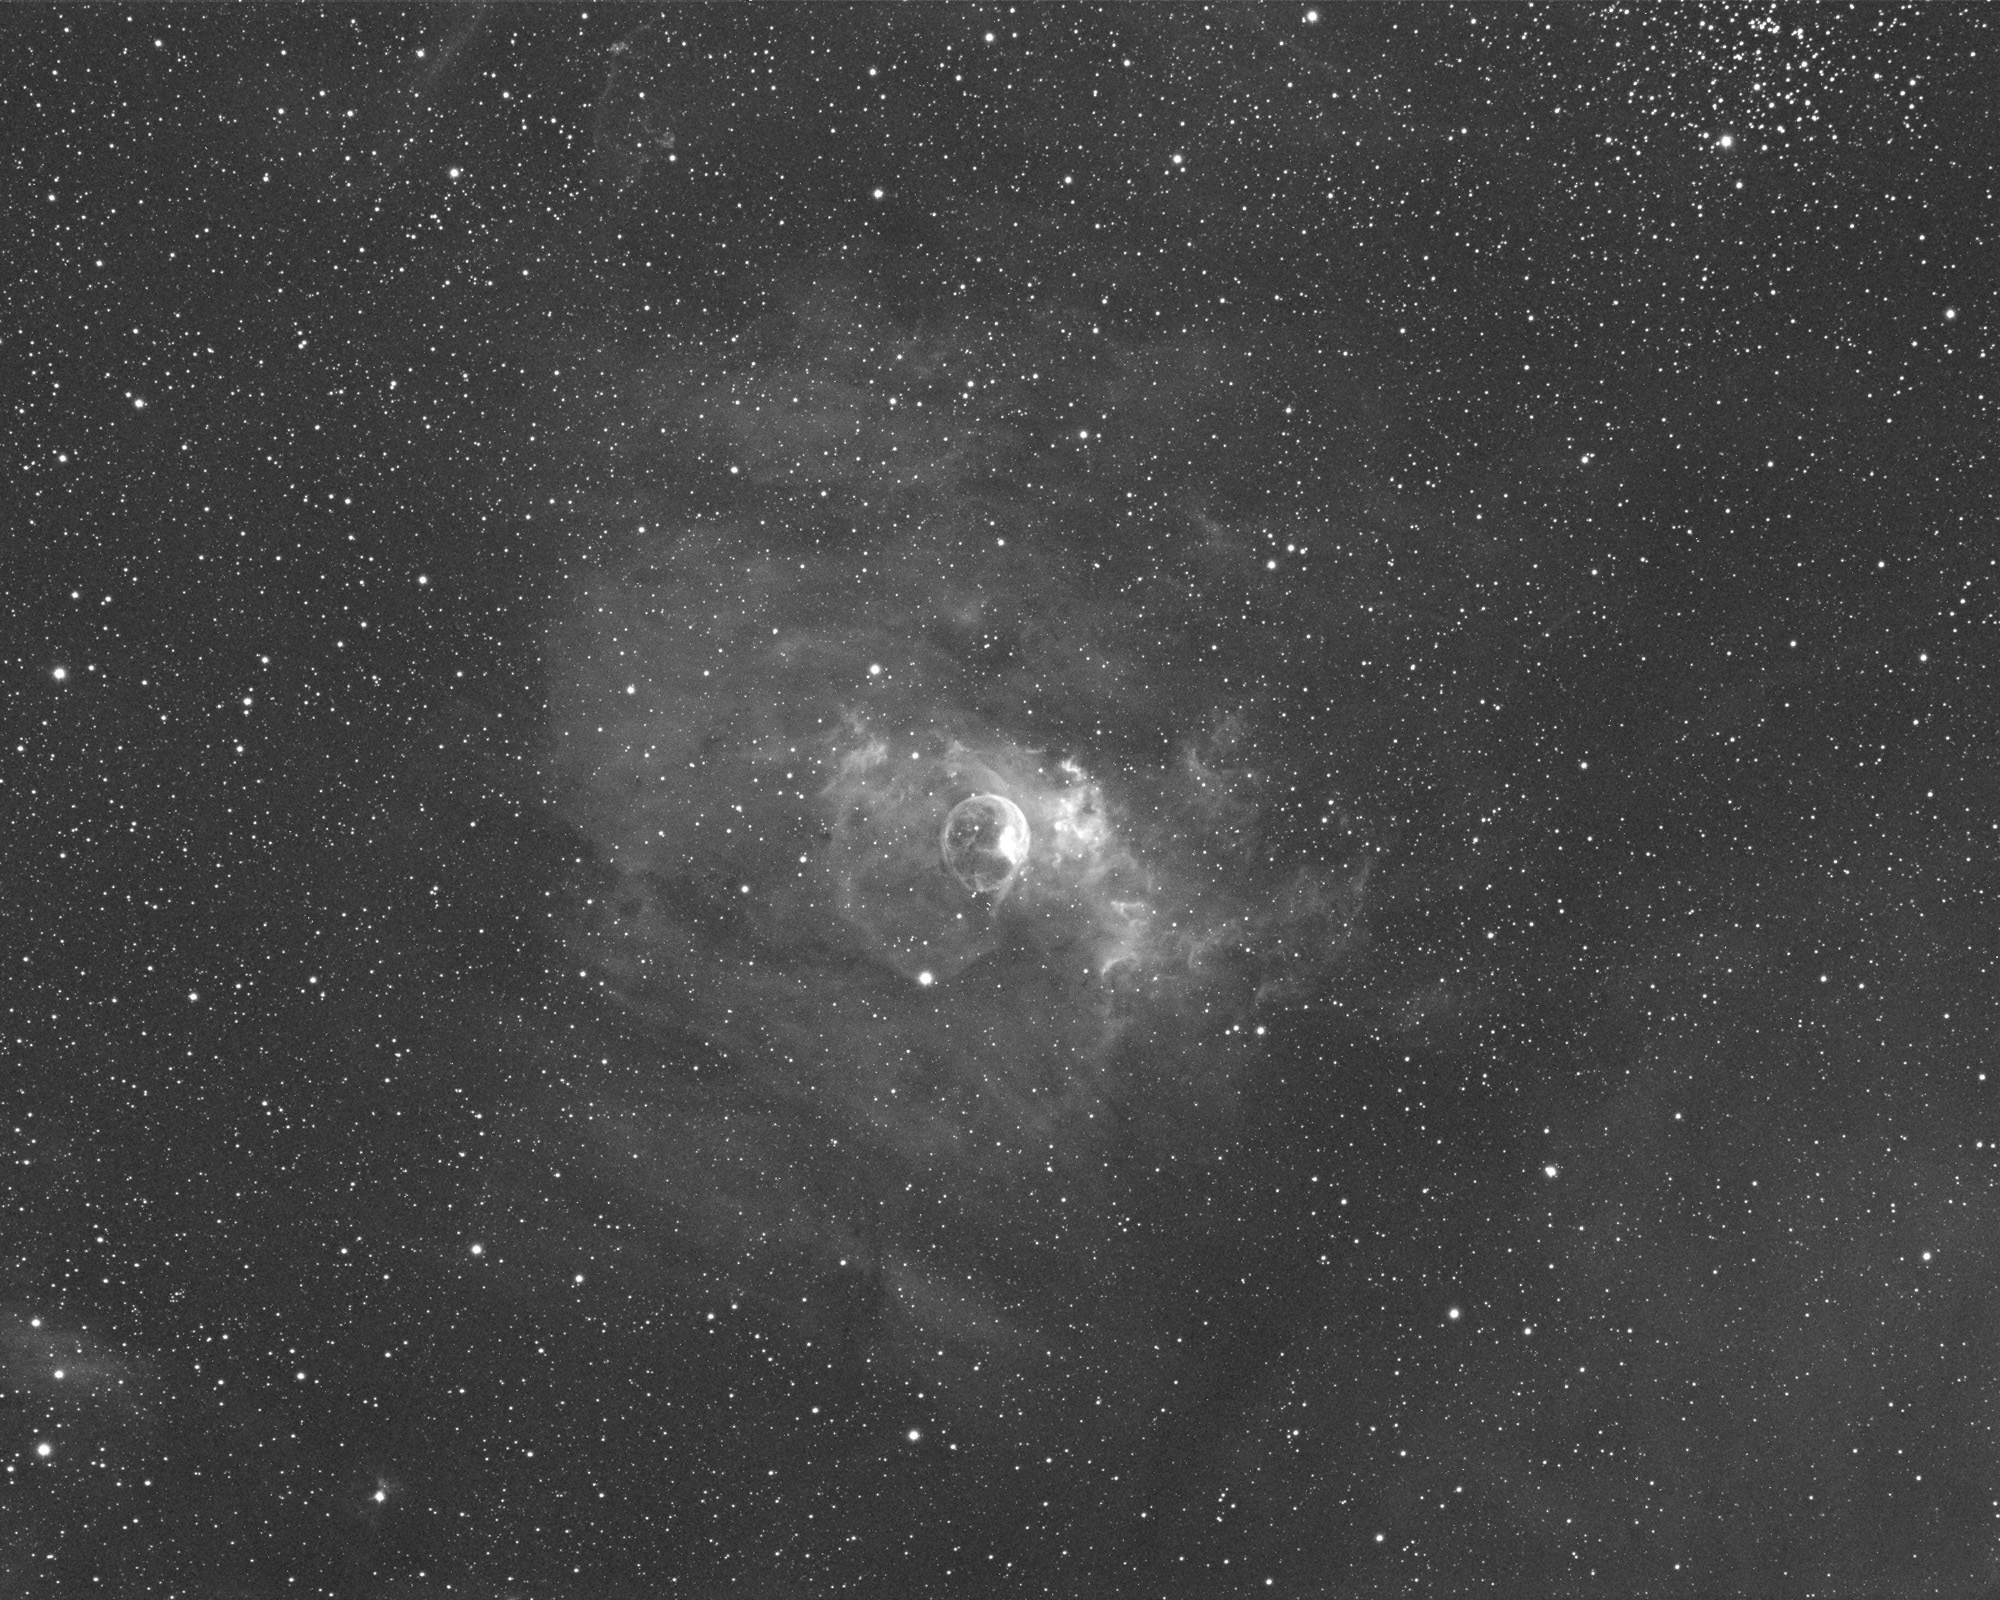 NGC7635 Ha 1800 03oct_001 DDP 2sml smooth Hipass.